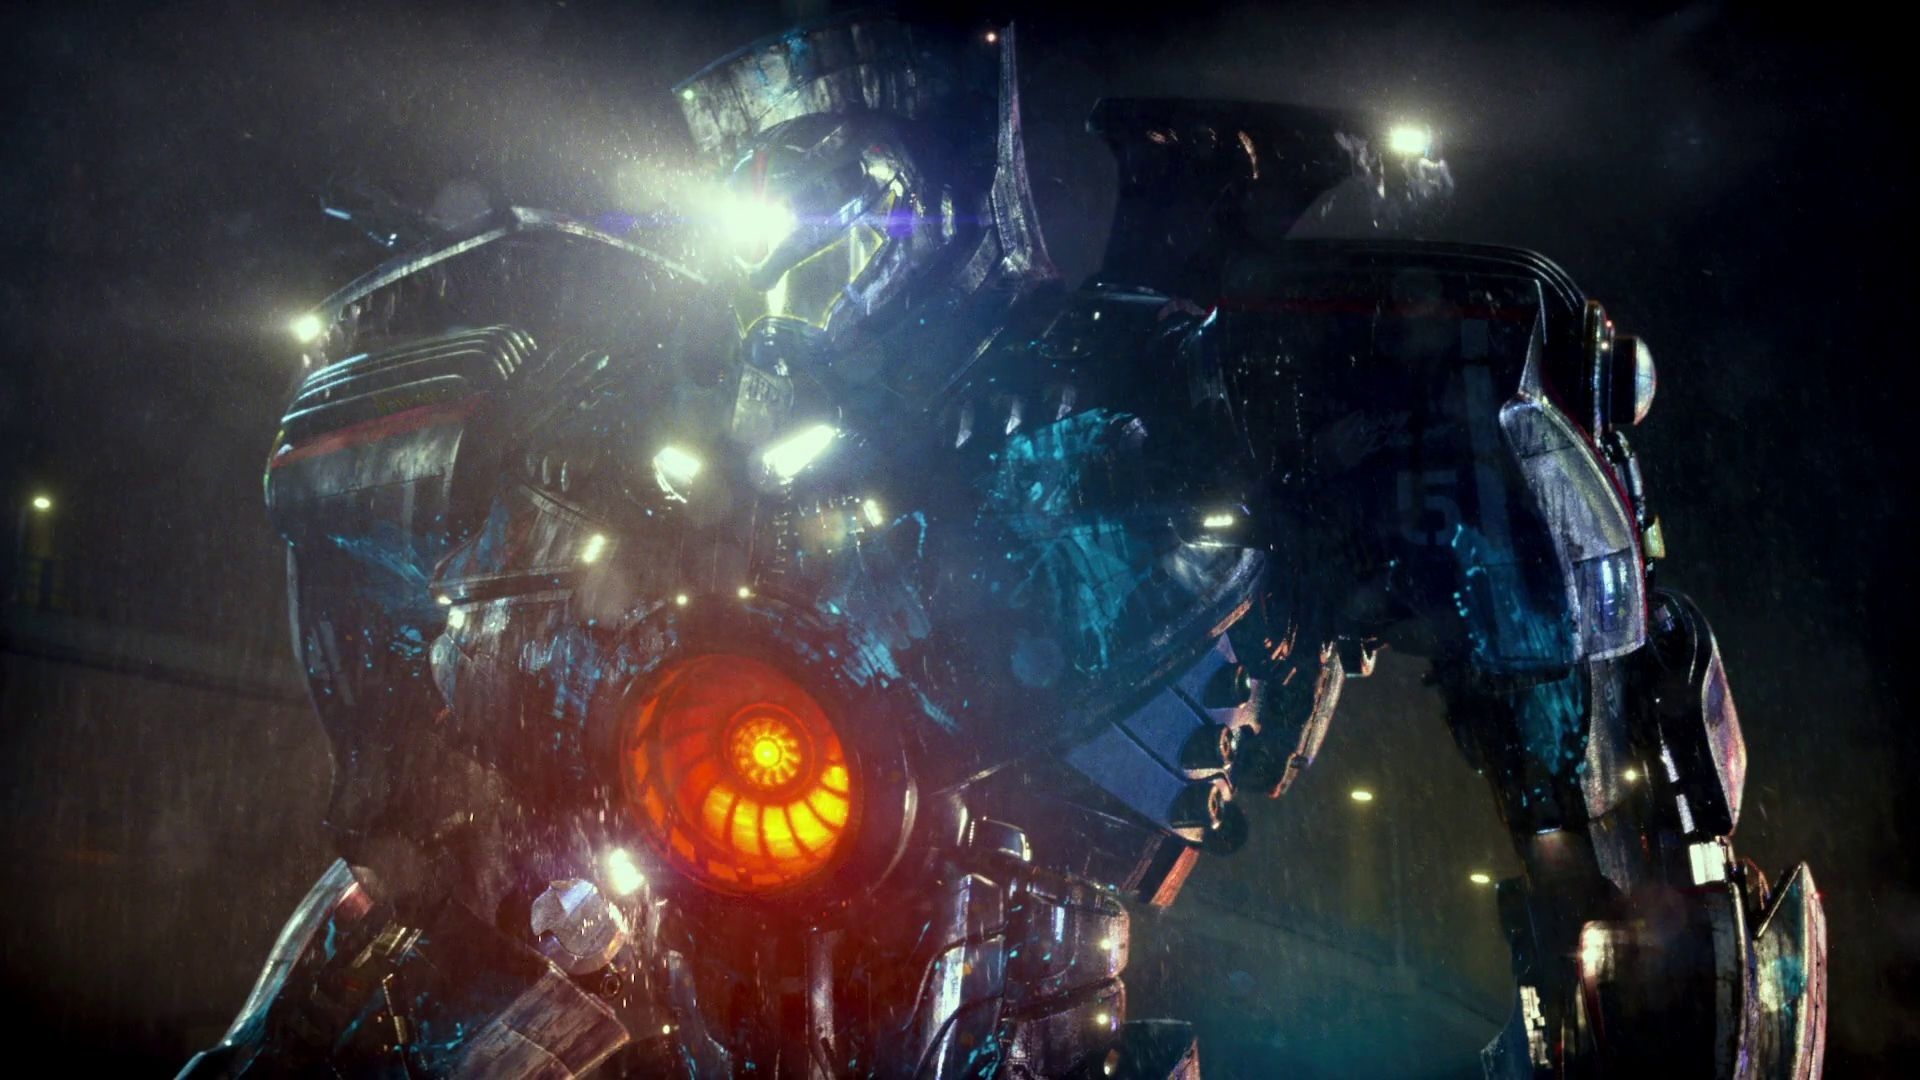 1920x1080 Image - Gipsy-hongkong.jpg | Pacific Rim Wiki | FANDOM powered by Wikia